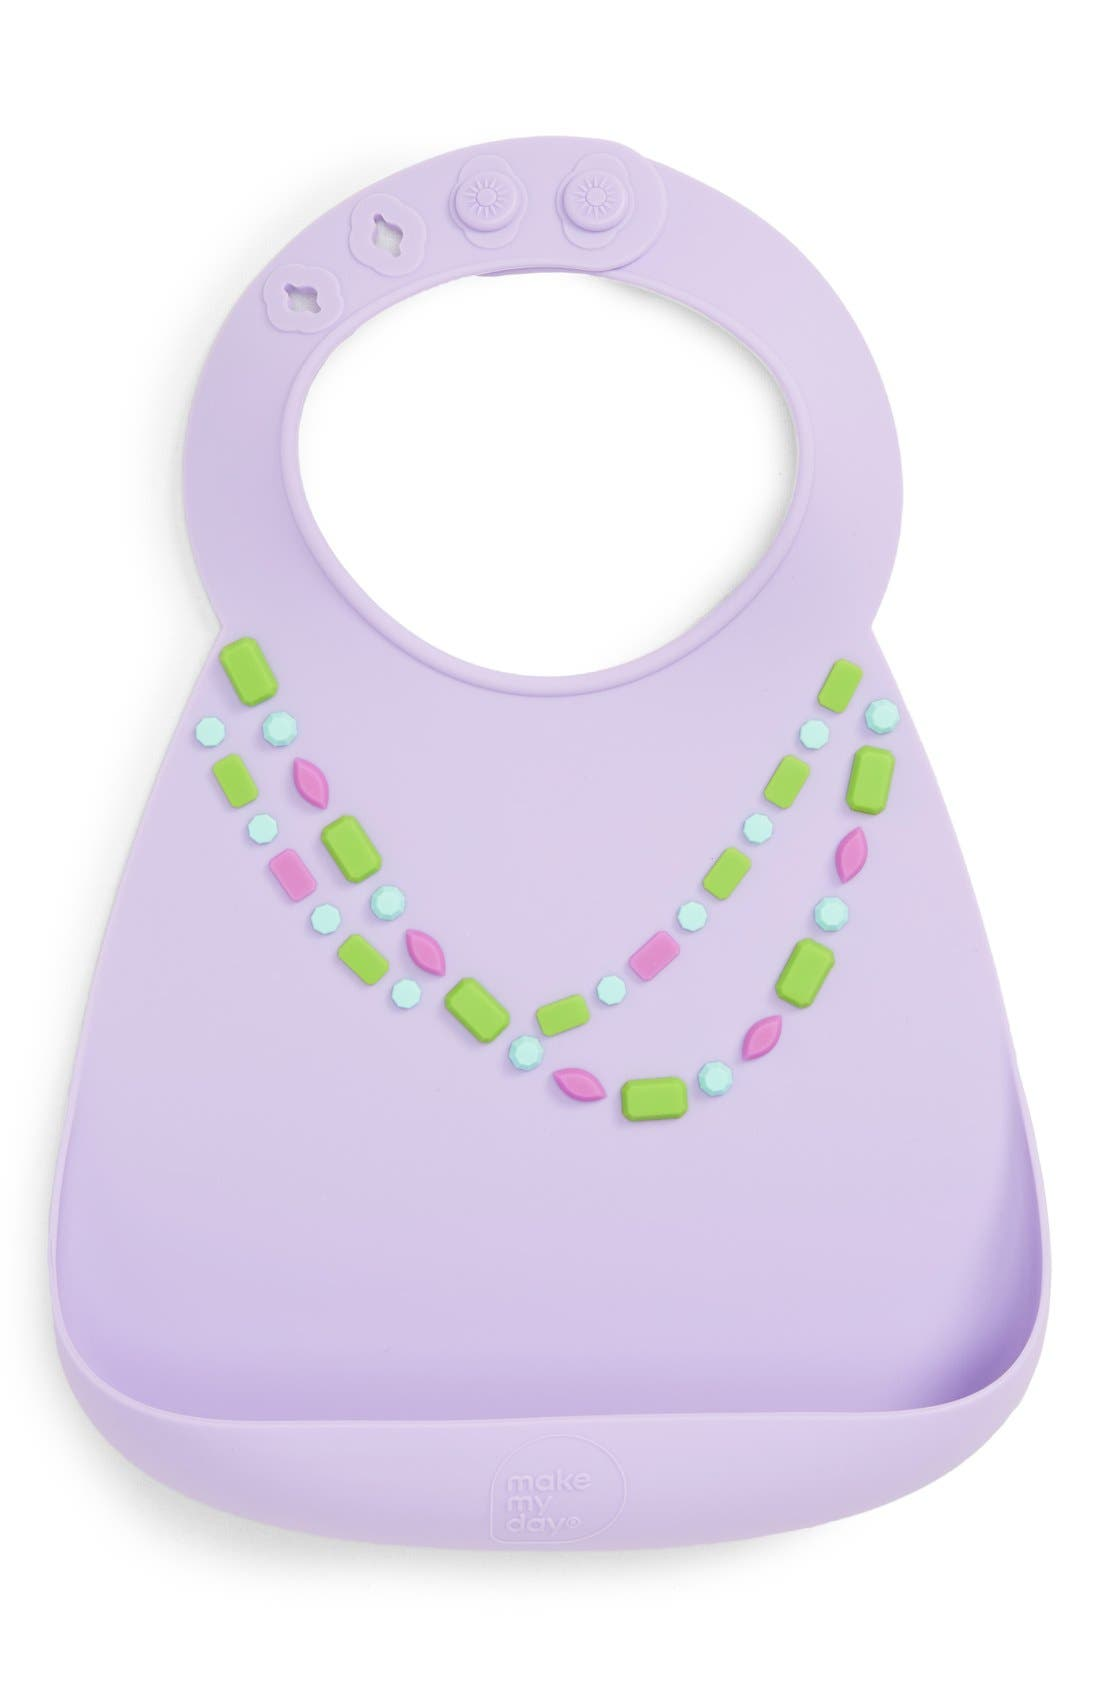 make my day 'For a Lil Sparkle' Bib